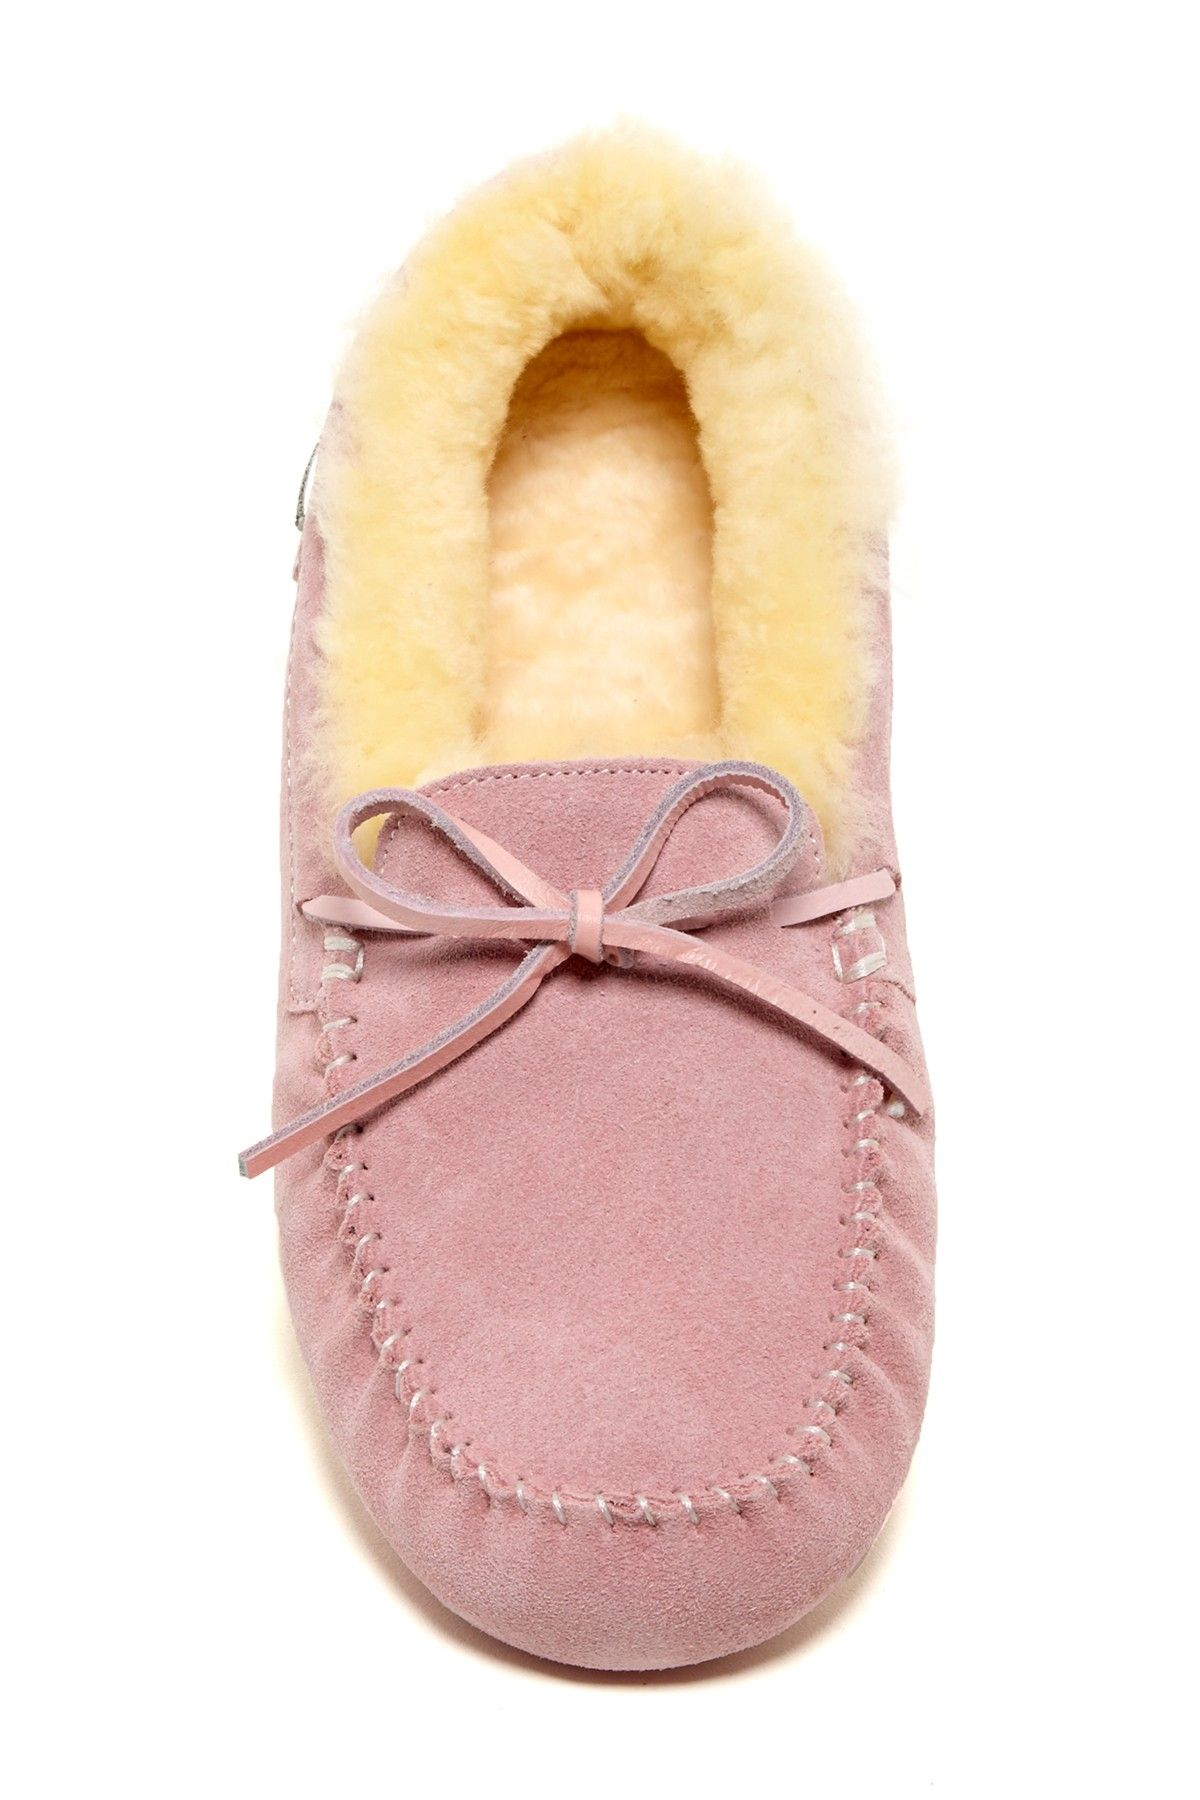 Australia Luxe Collective - Prost Genuine Sheepskin Lined Moccasin  at Nordstrom Rack. Free Shipping on orders over $100.